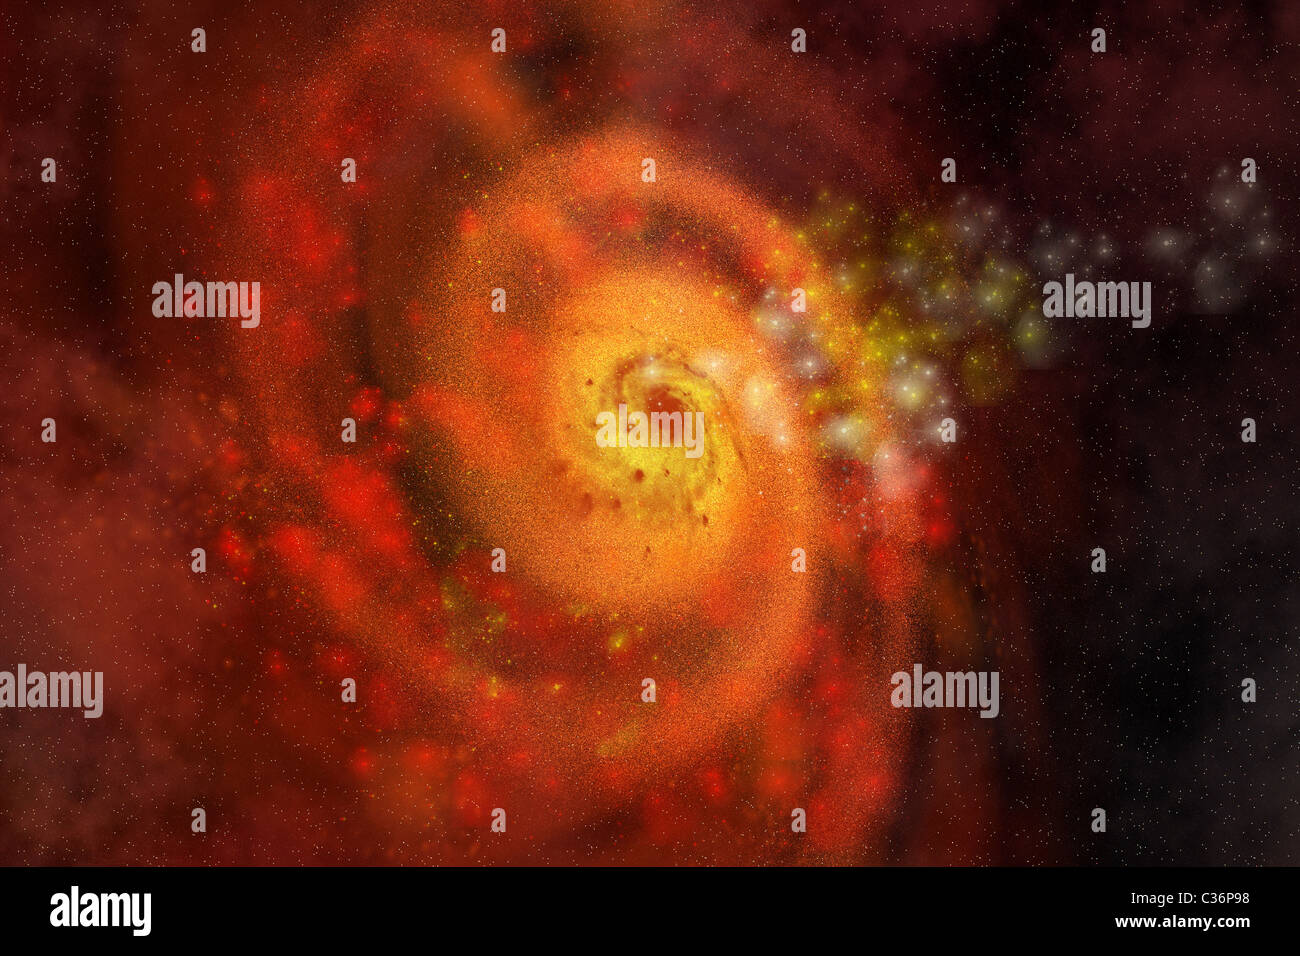 A collection of stars and gasses make up a beautiful spiral galaxy out in space. - Stock Image